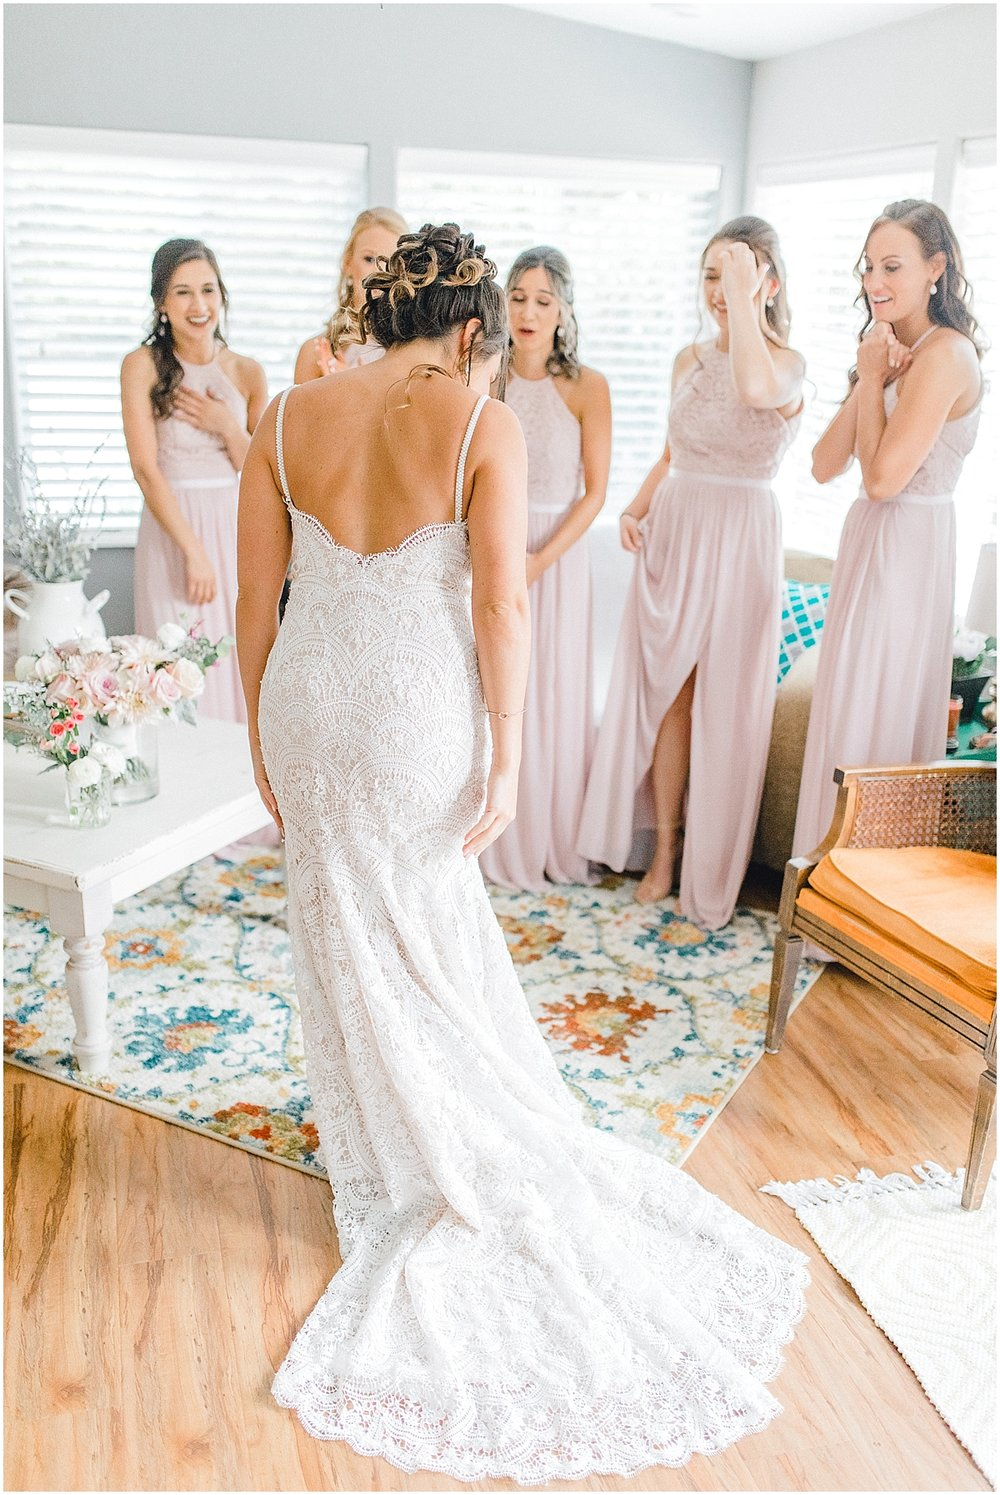 Beautiful mauve wedding in the Pacific Northwest, Emma Rose Company Light and Airy Wedding Photographer Seattle, Washington, Kindred Presets, Wedding Design Details Purple and Blush_0033.jpg